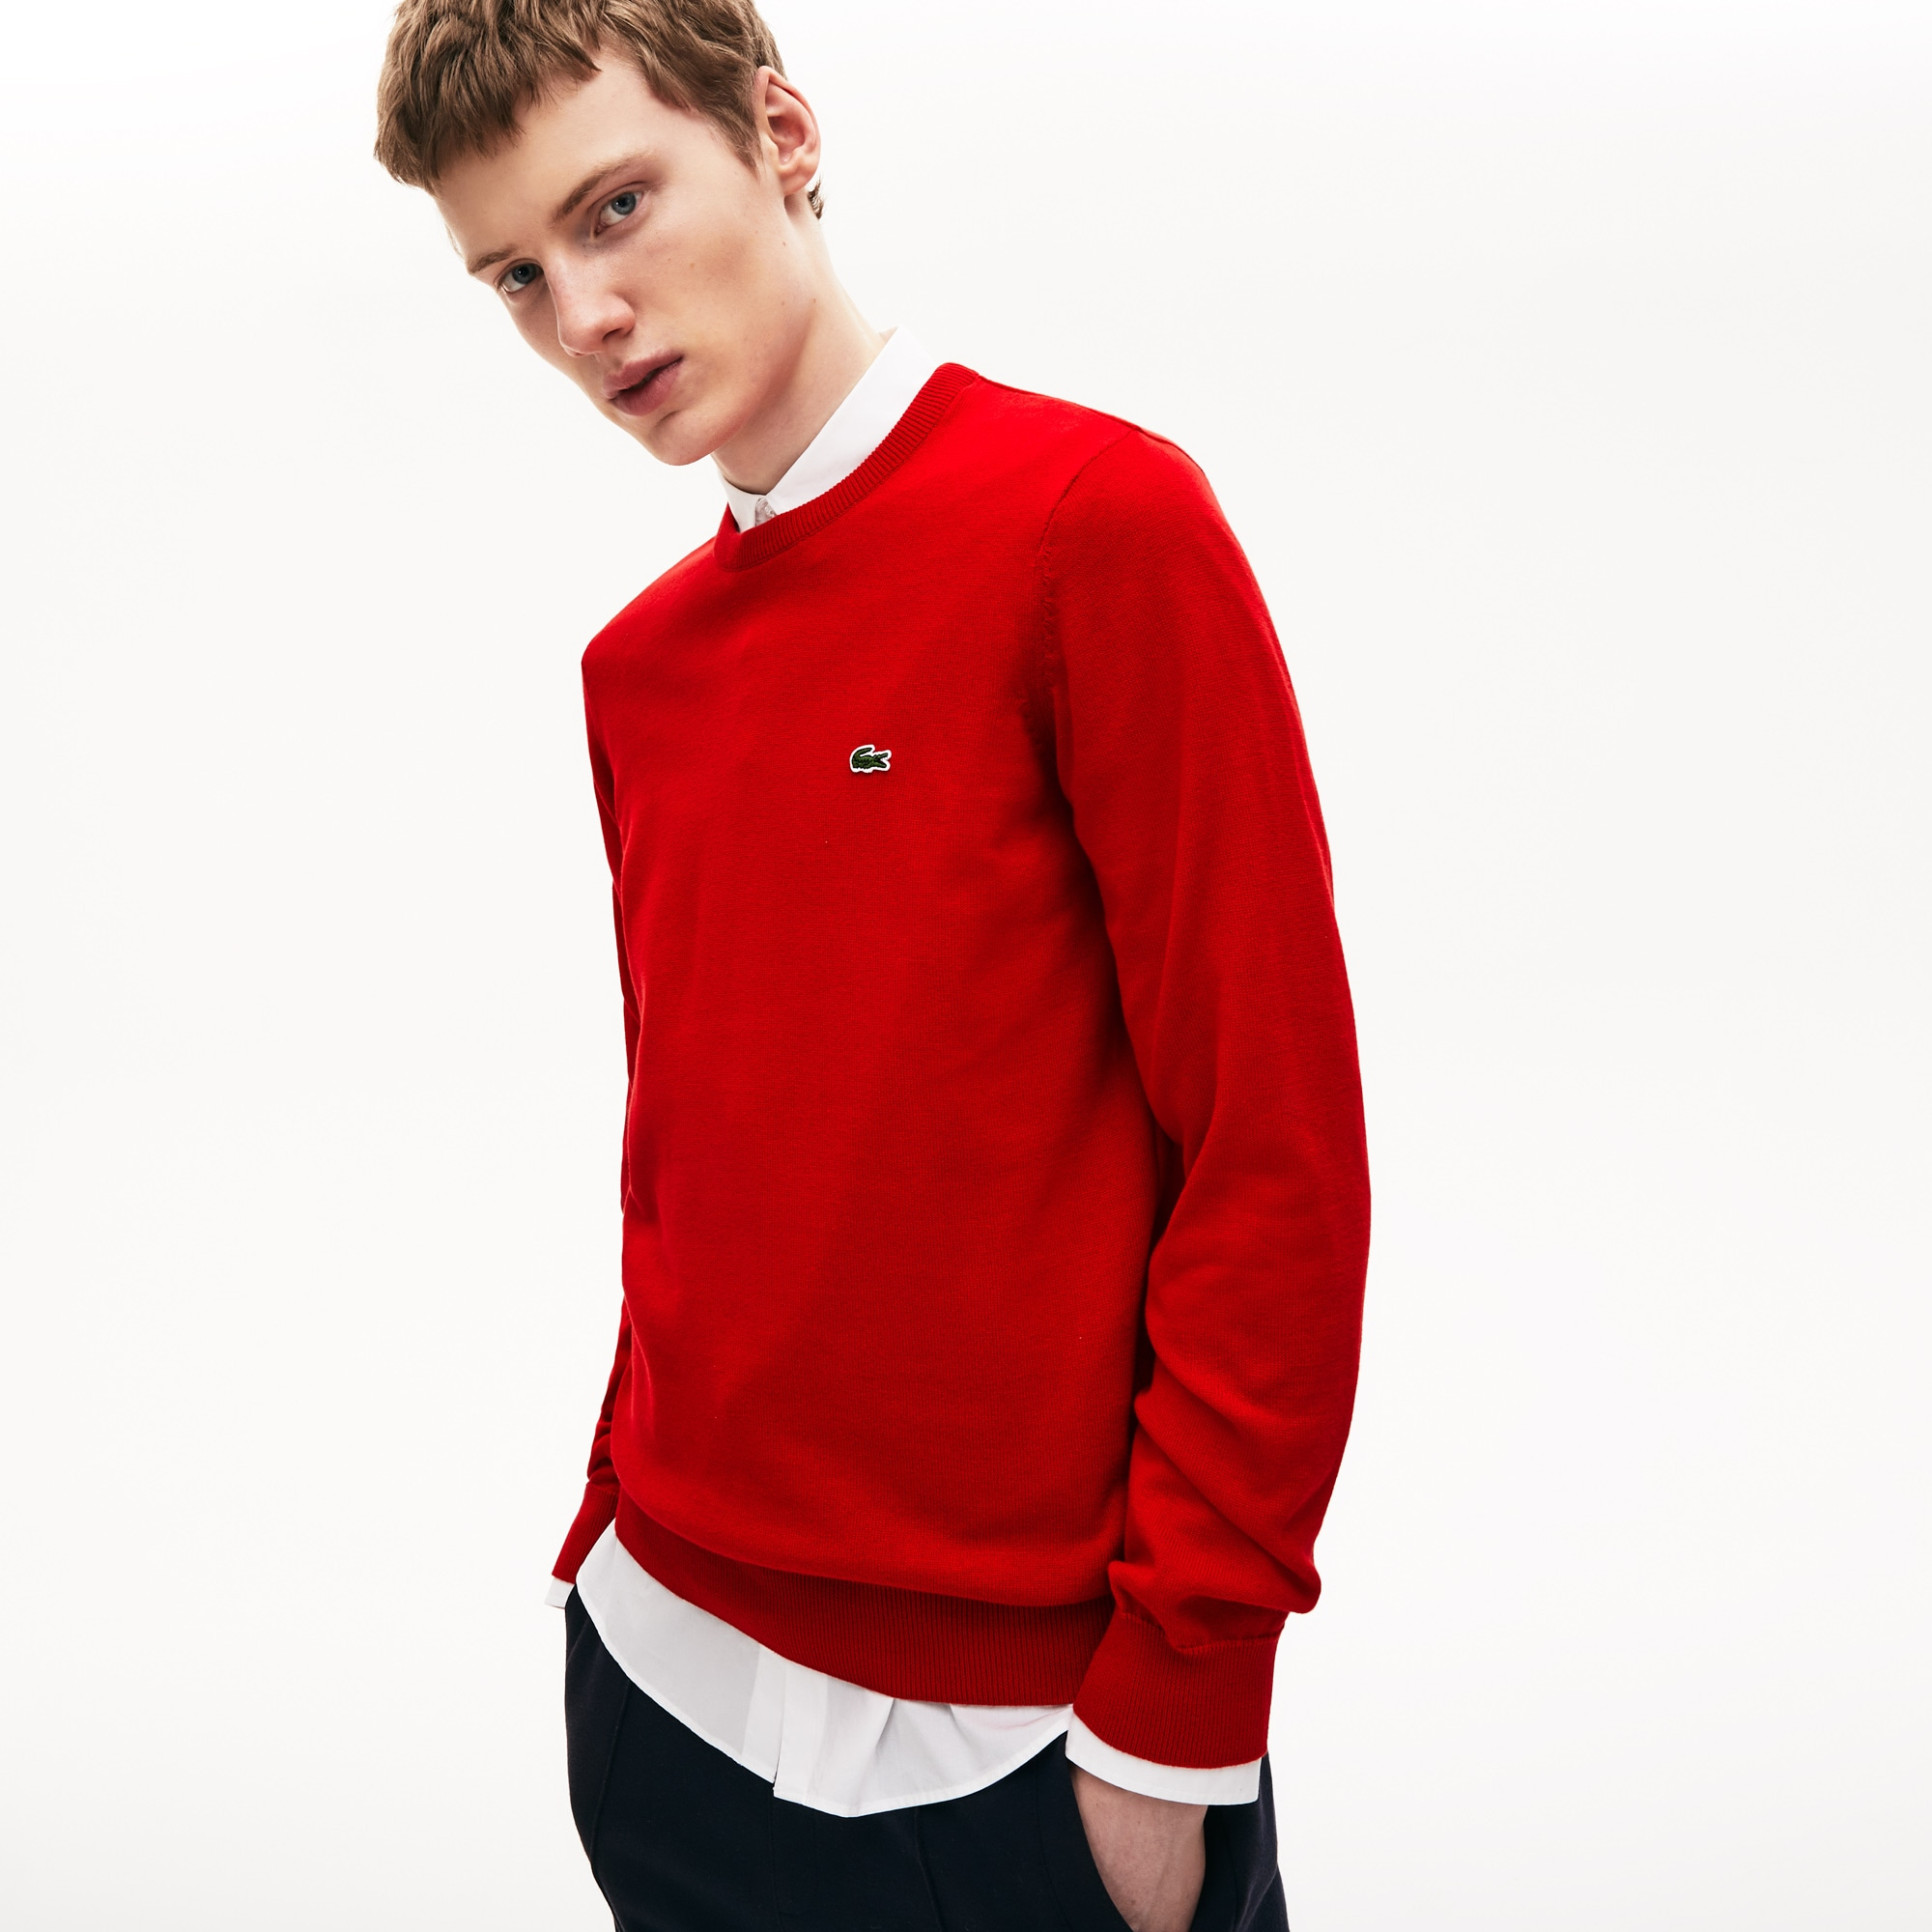 Men's Crew Neck Cotton Jersey Sweater